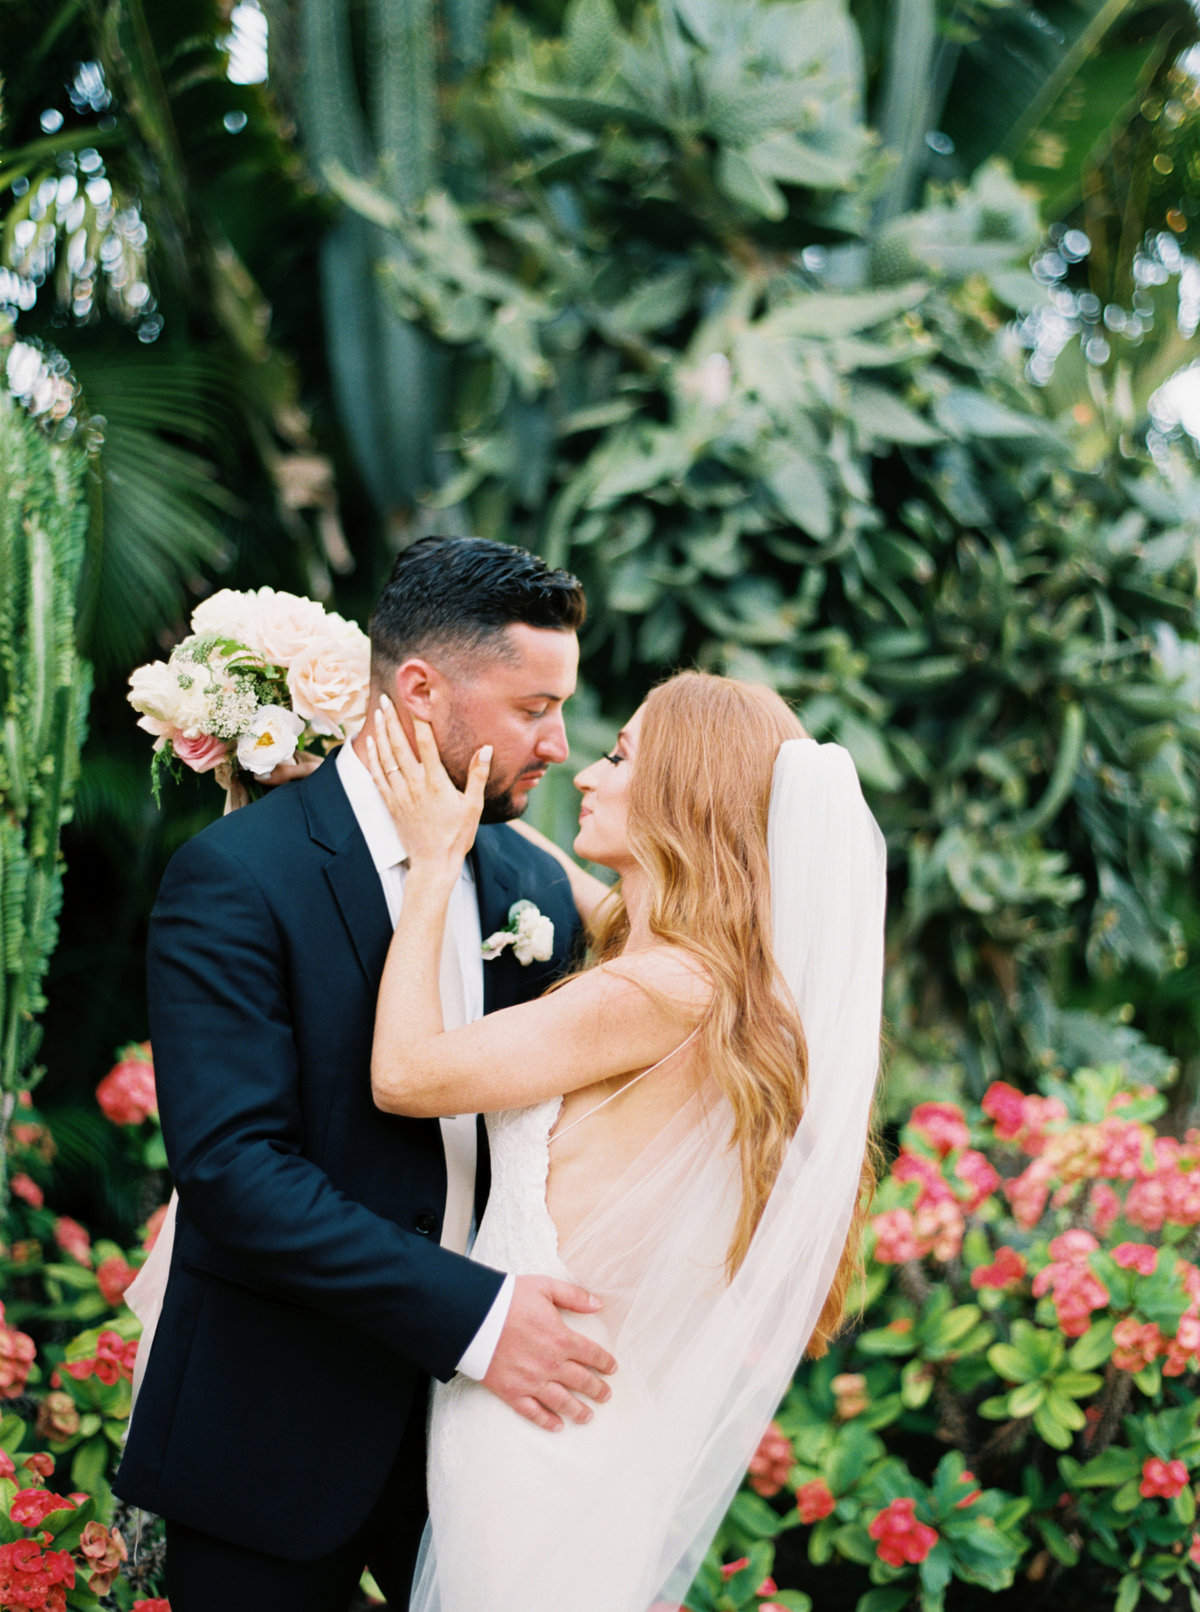 Dominican Republic Wedding - Mary Claire Photography-22